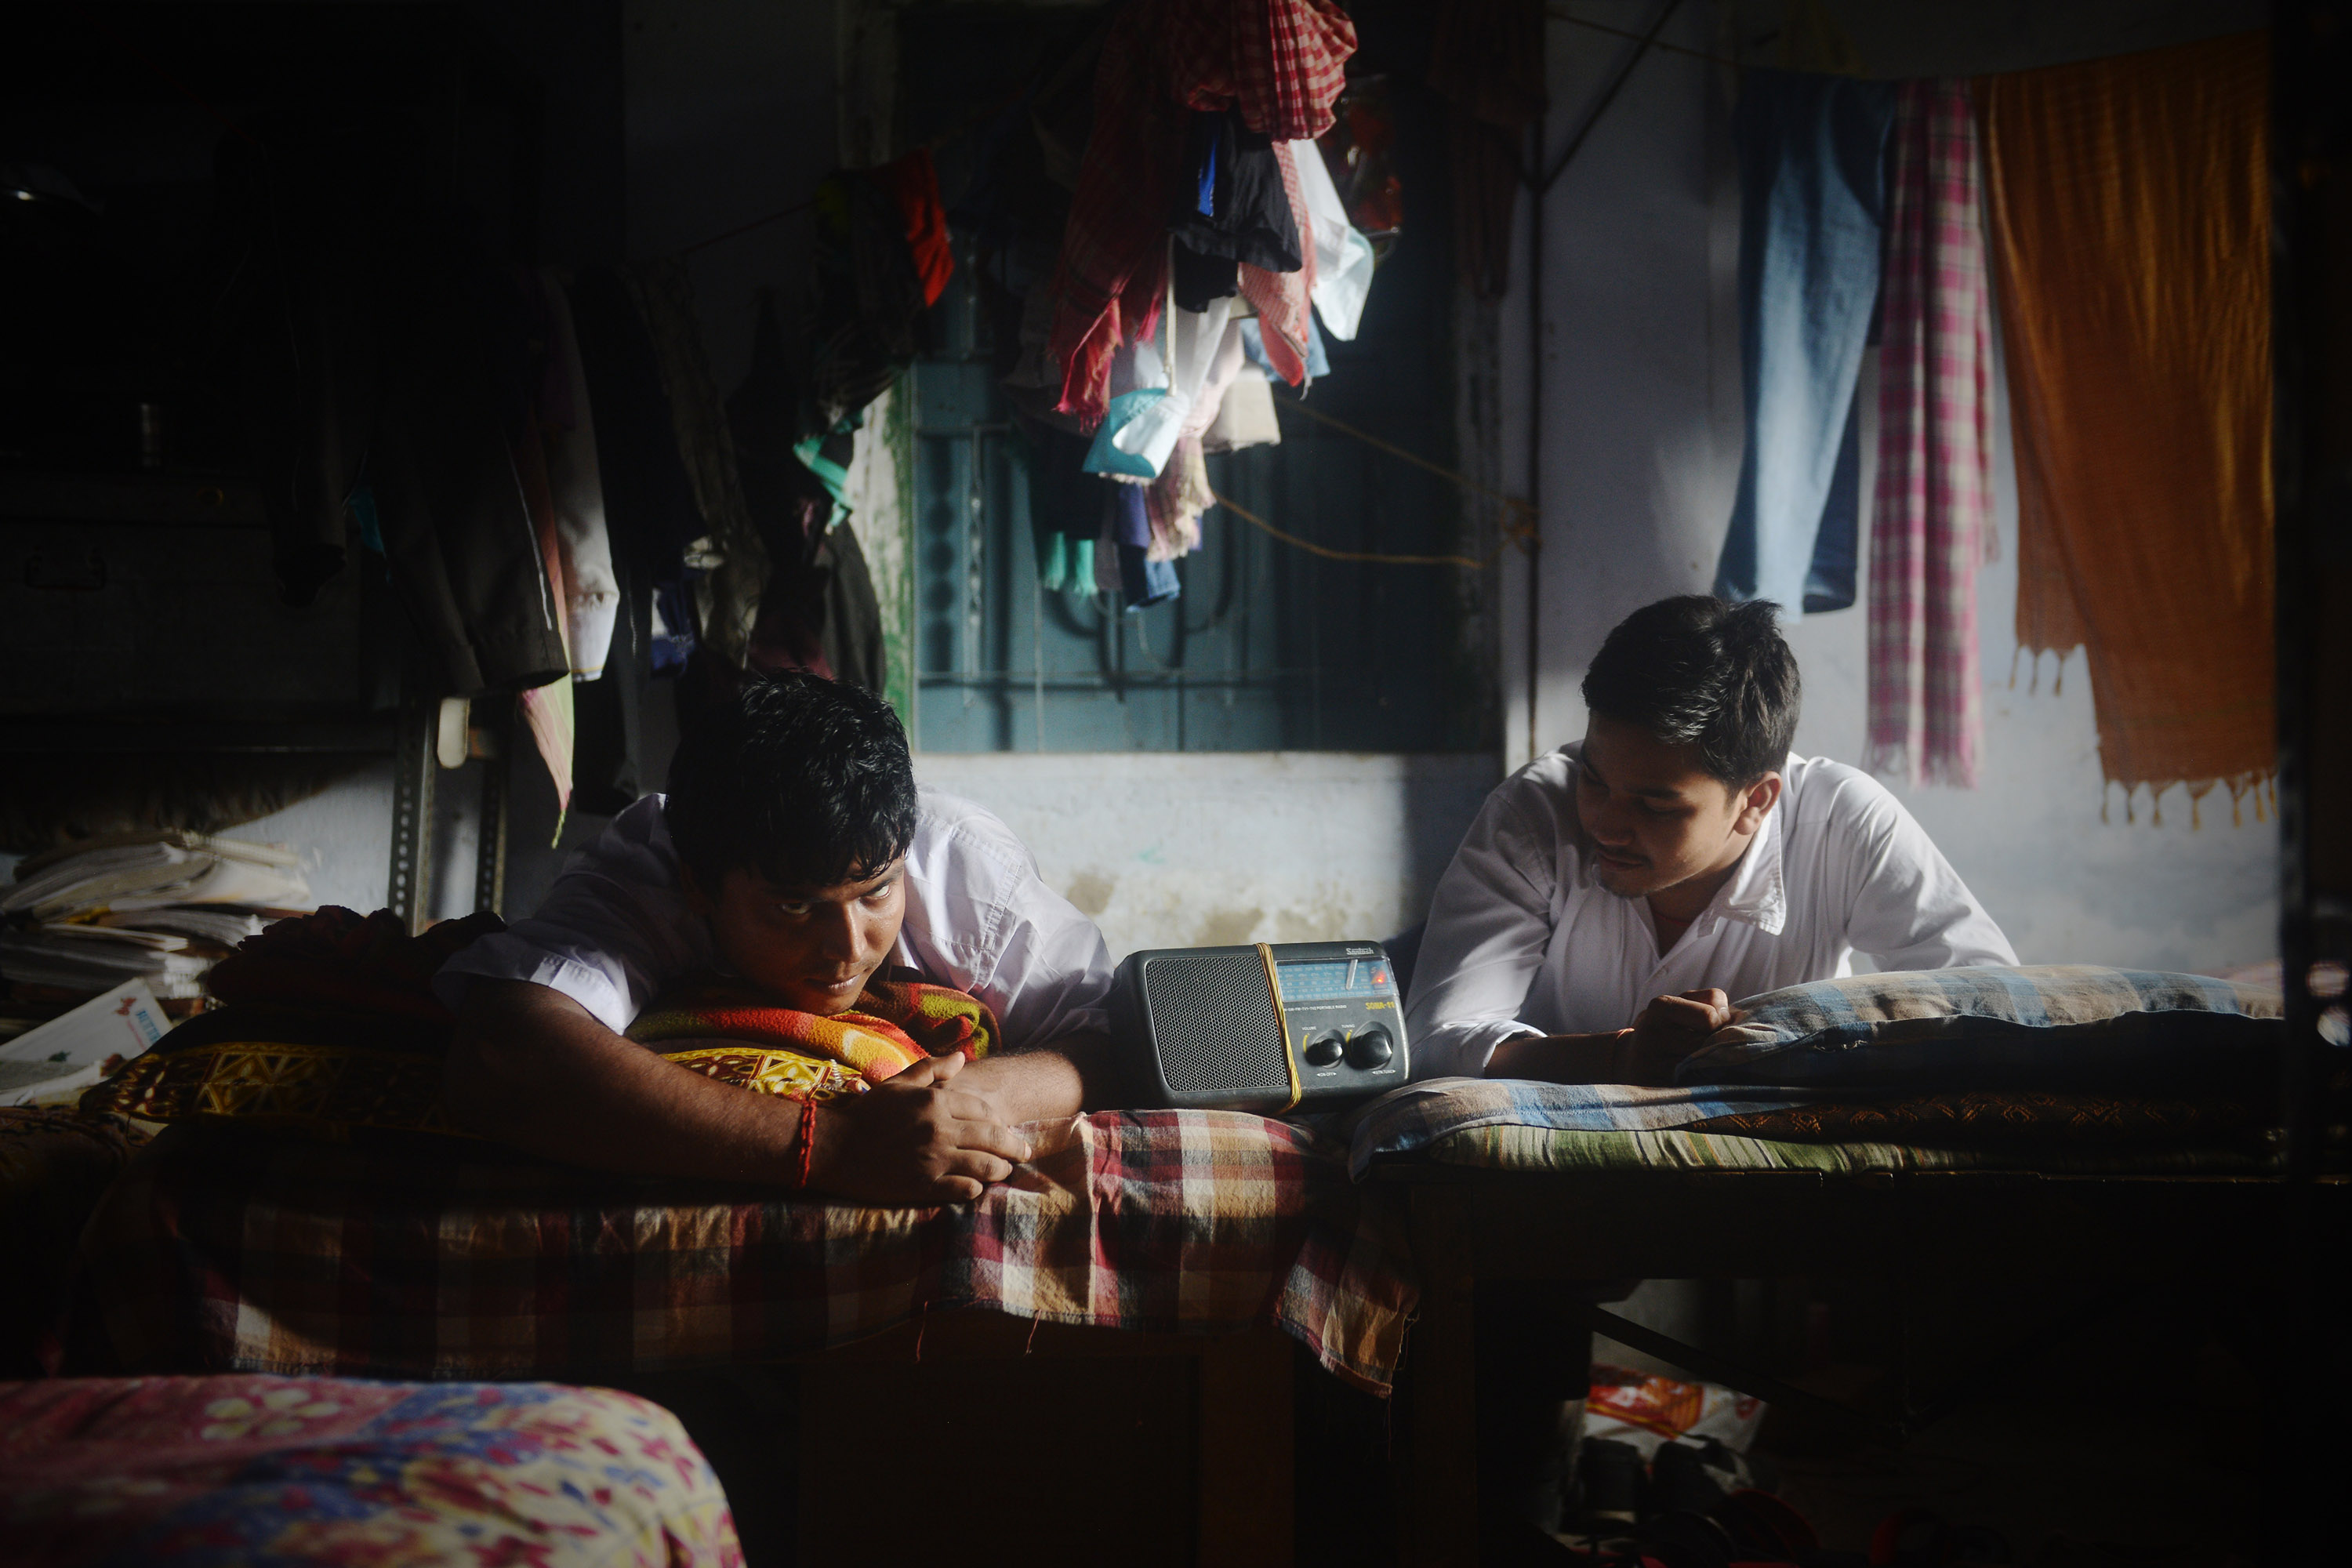 Students listening to radio in their dormitory. Radio is the most popular media for news dissemination amongst the visually impaired. Credit: Sutirtha Chatterjee